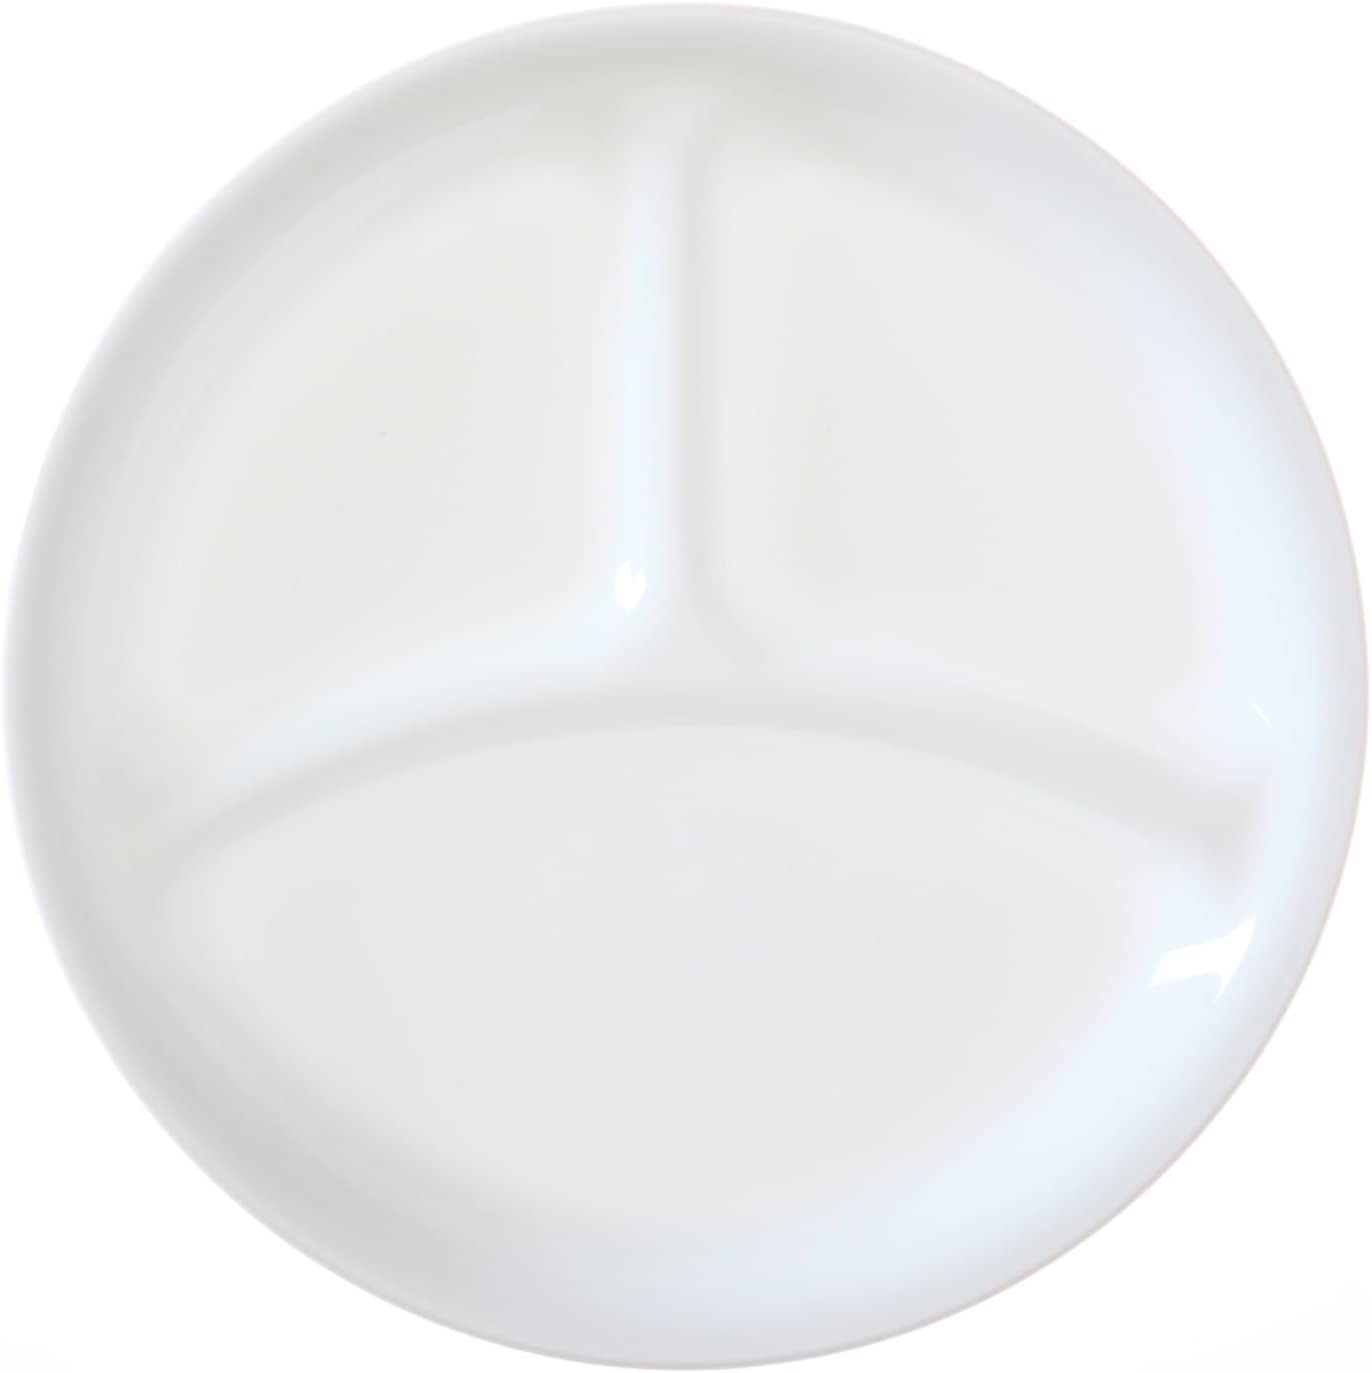 | Corelle Livingware set of 4 8-1/2-Inch Divided Dish, Winter Frost White: Divided Trays & Platters